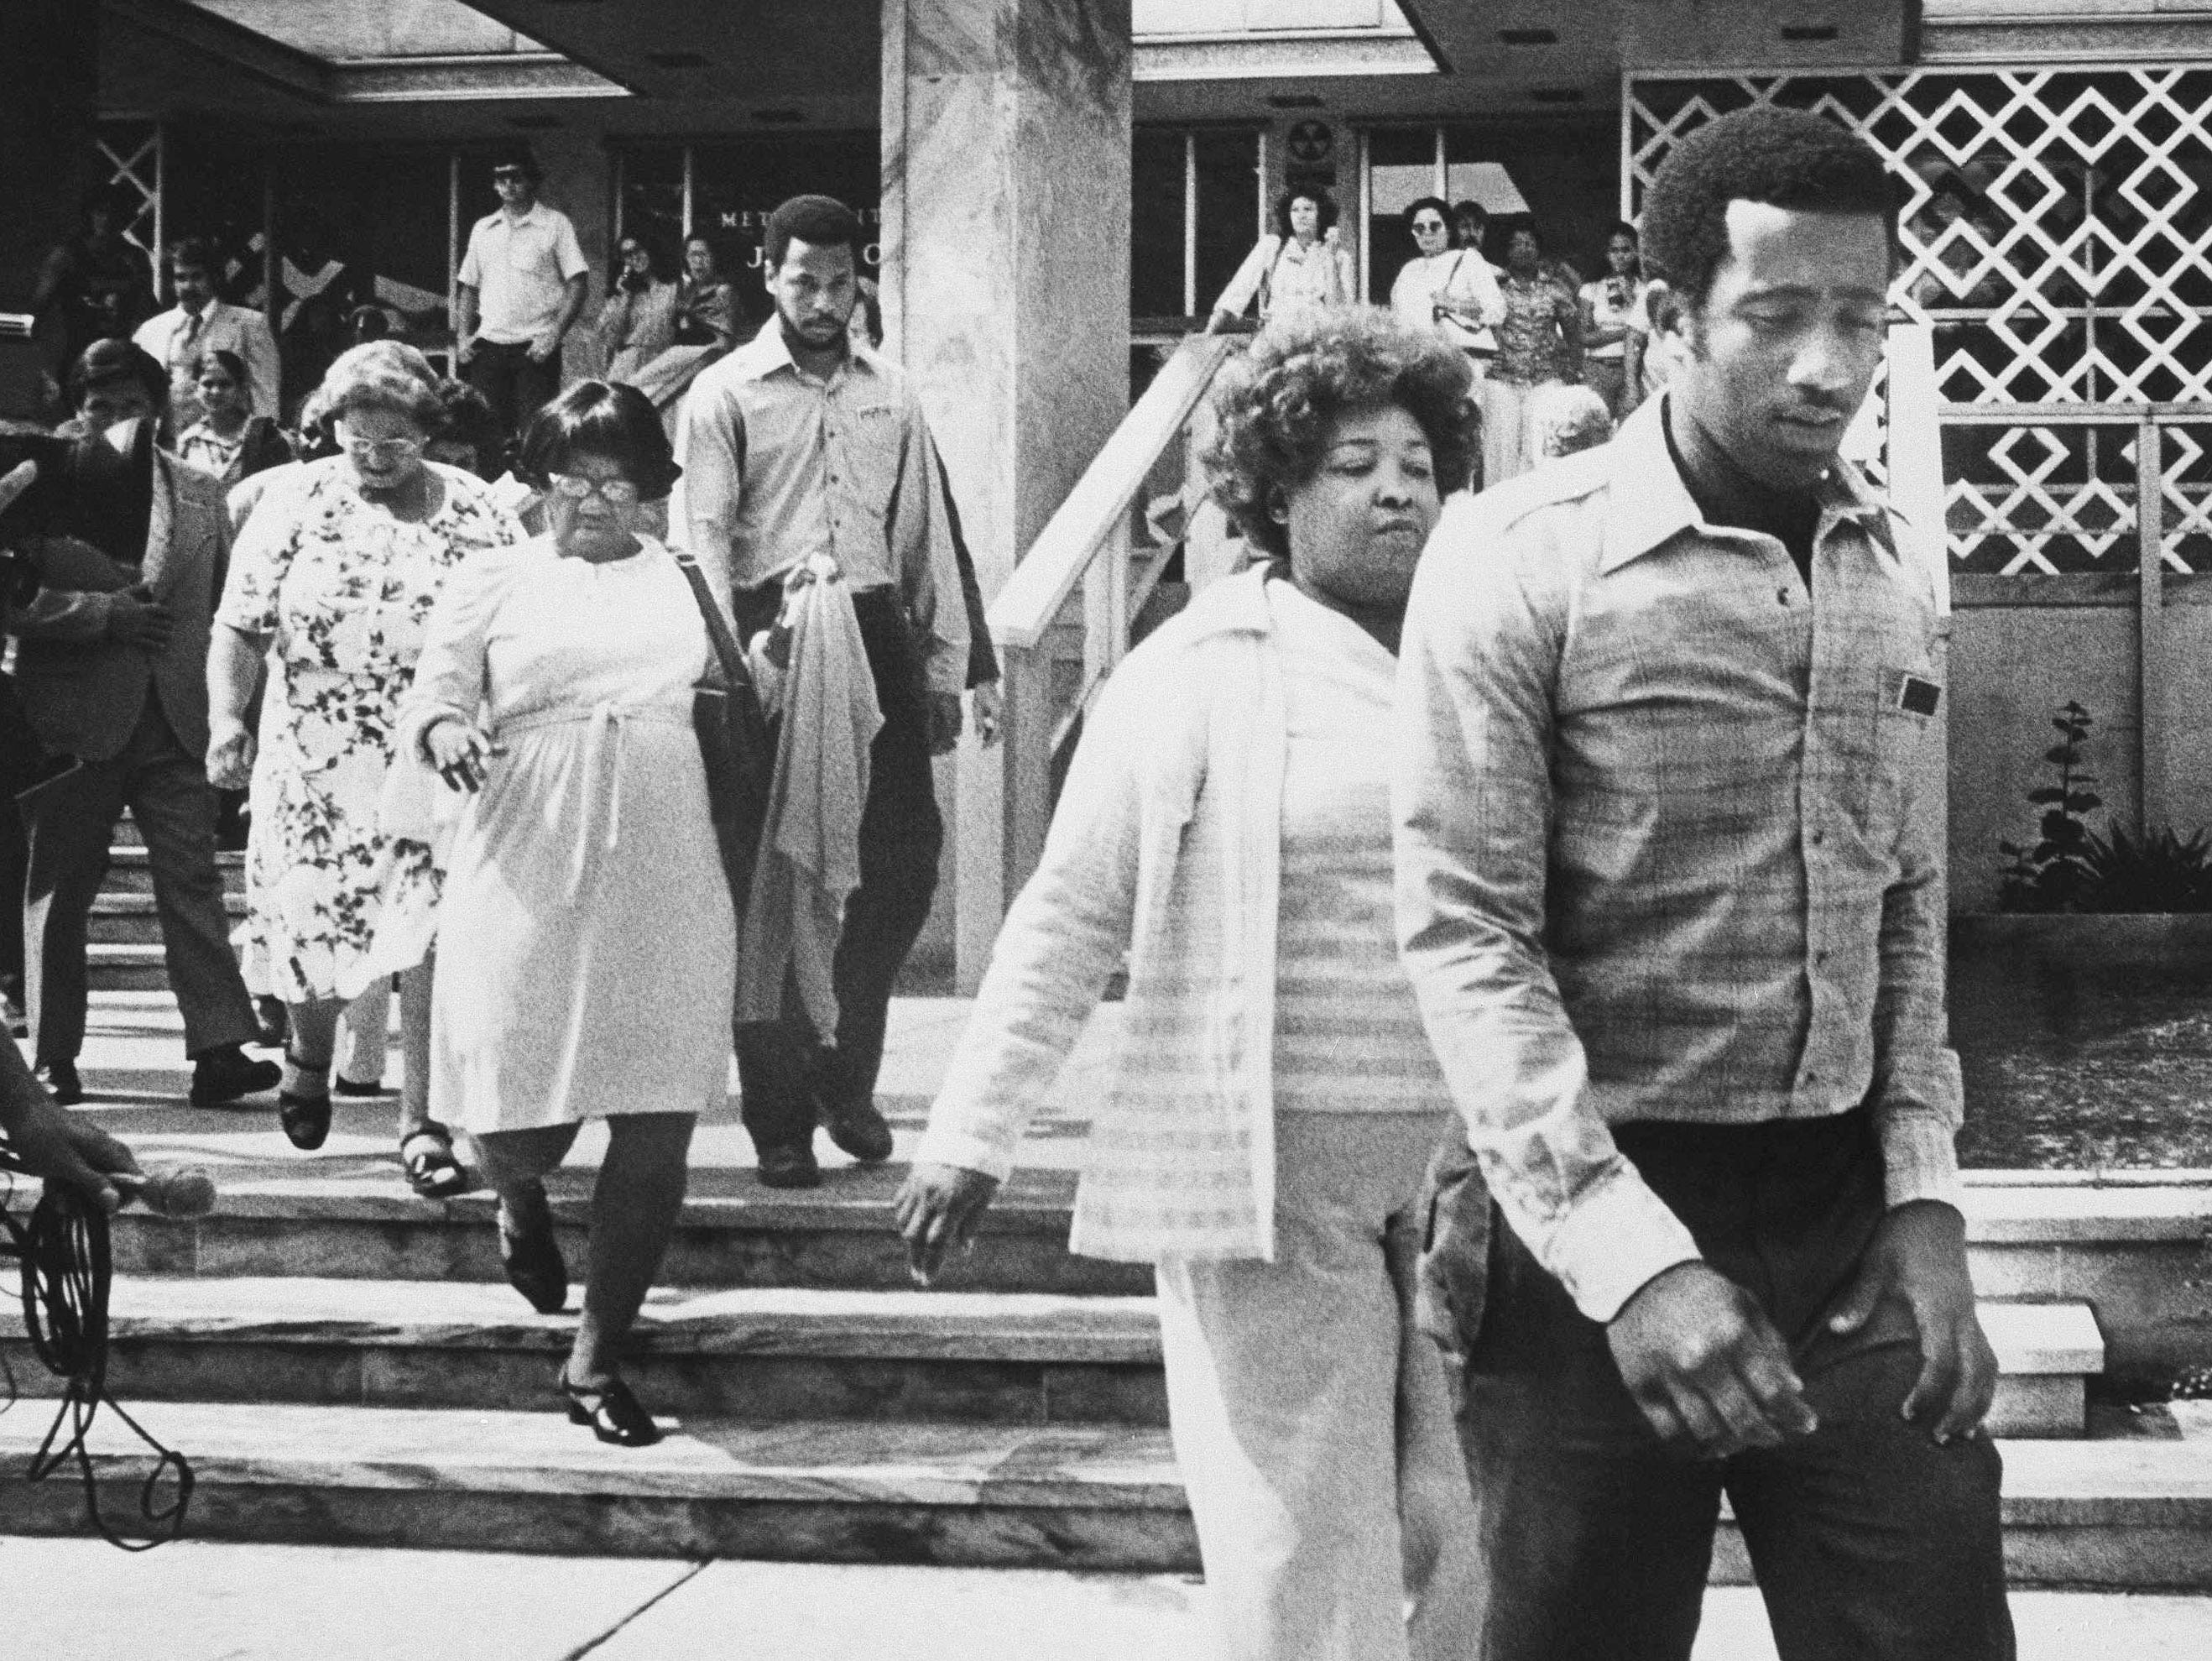 The jury in the Theodore R. Bundy murder trial files out of the Dade County Courthouse after handing down the death sentence, July 31, 1979 in Miami.